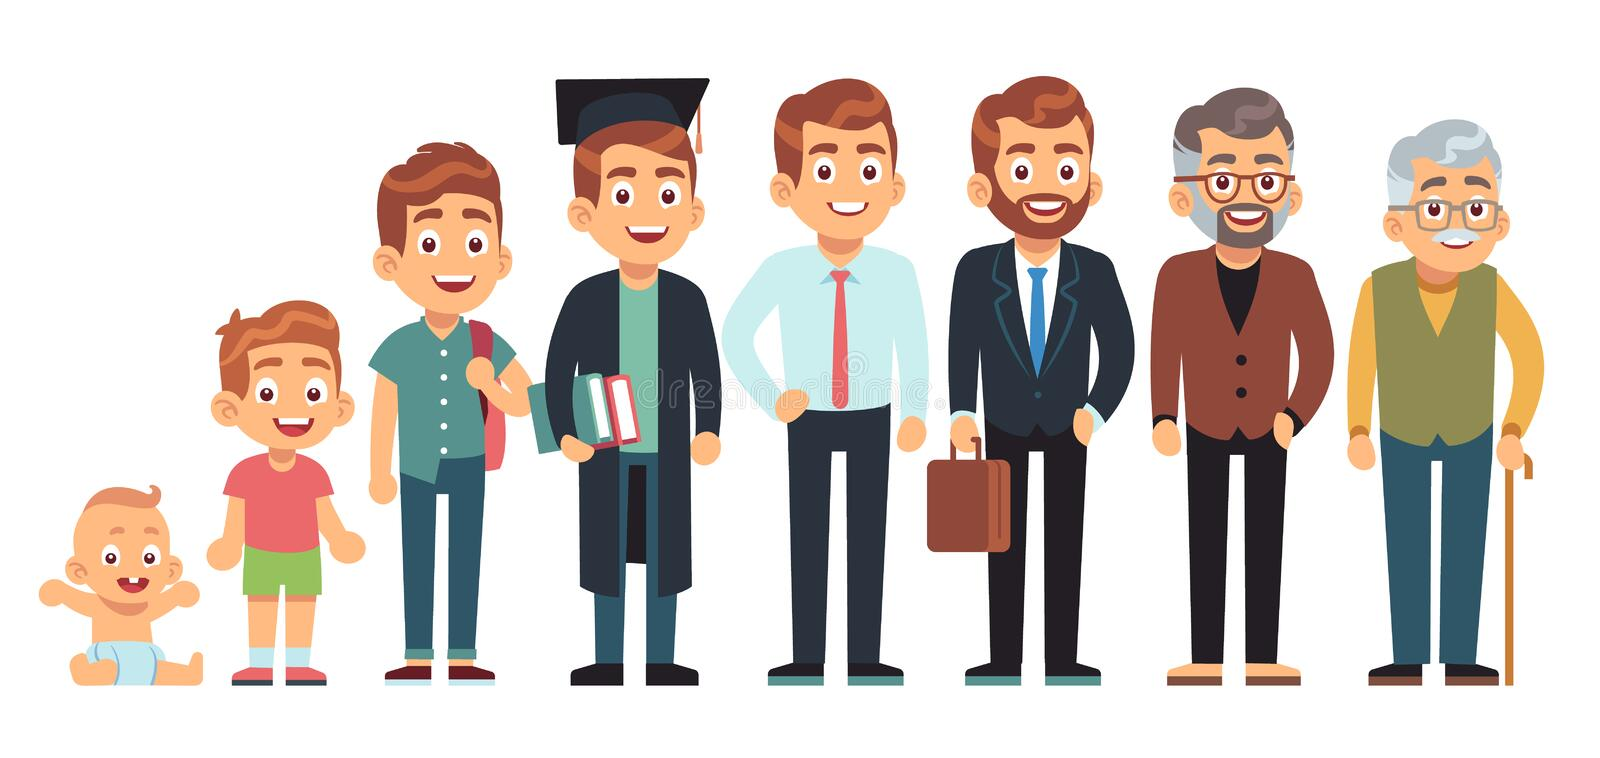 Man age. Male of different life ages, people generation cycle, growing up character. Child, student and adult old man. Man age. Male of different life ages royalty free illustration